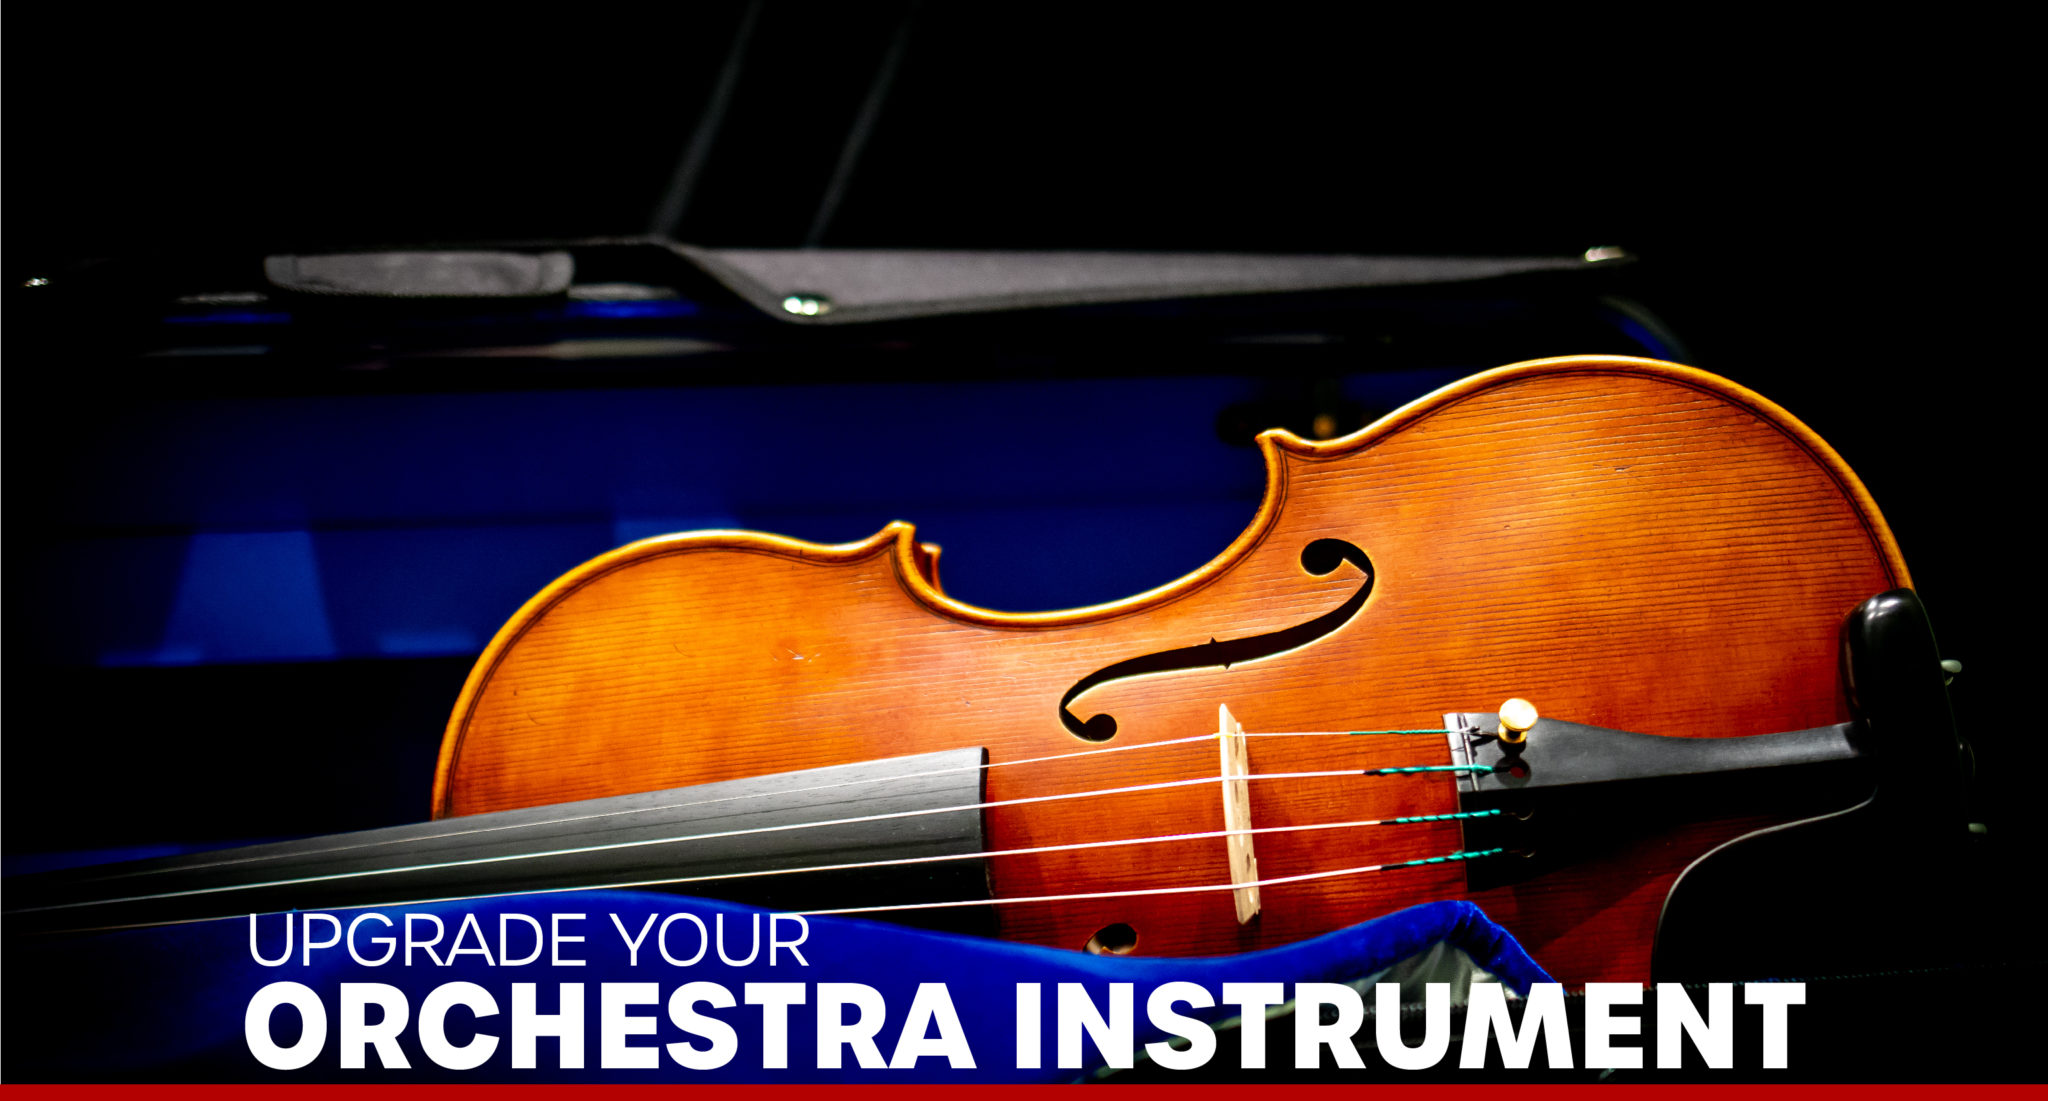 Upgrade Your Orchestra Instrument